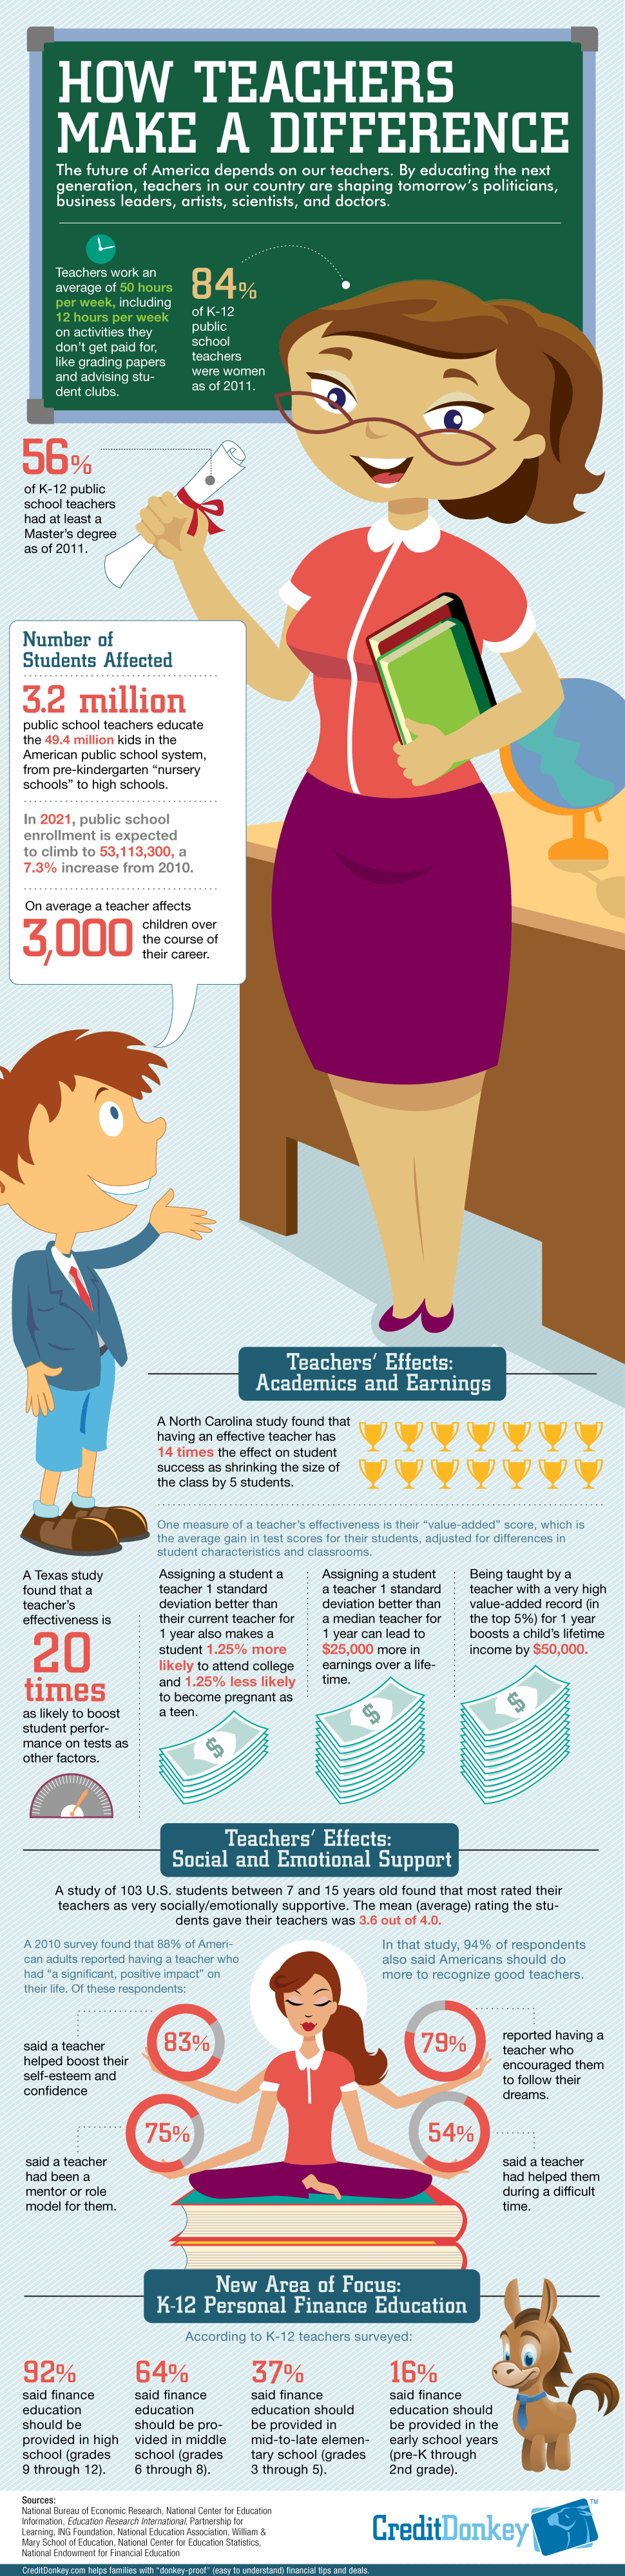 how-teachers-make-a-difference_521514adb2e0a